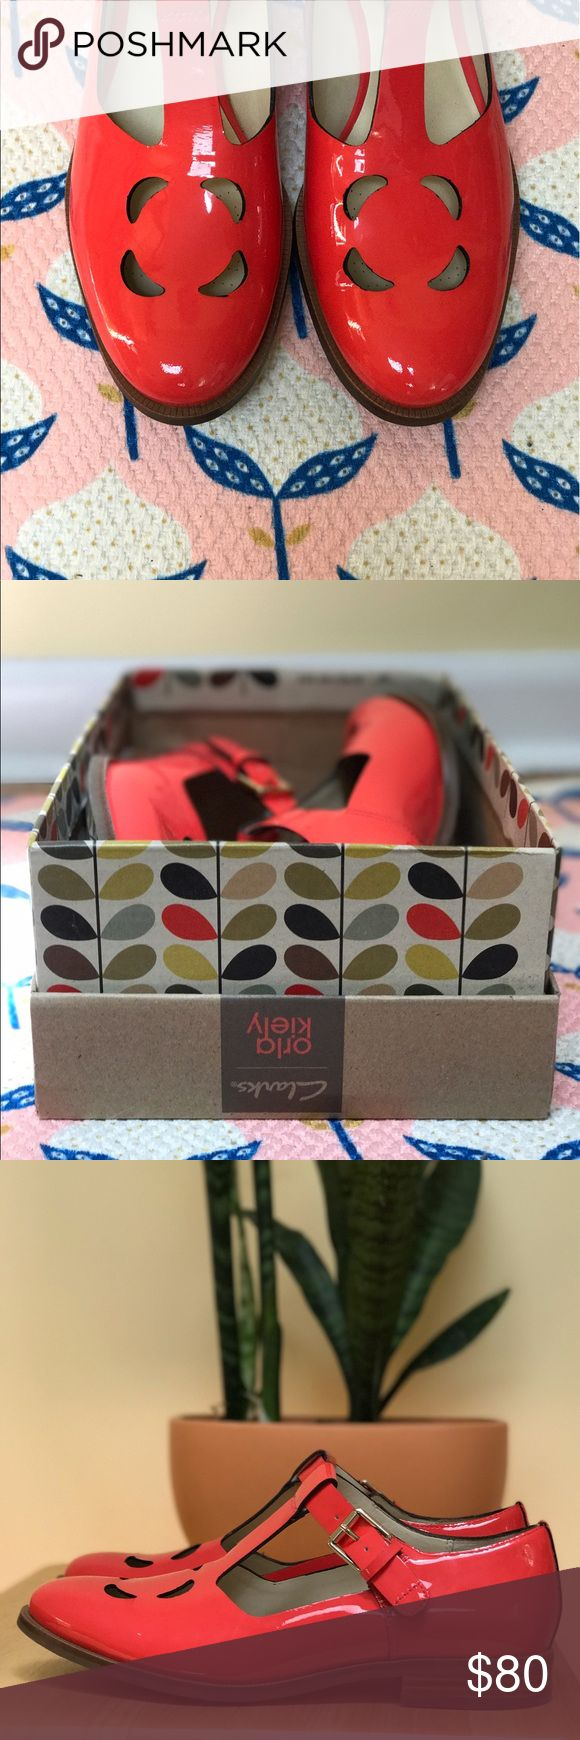 Clarks x Orla Kiely | IN BOX | patent leather Poppy red, patent leather t-strap Mary-Janes with flower cutout from Clarks' collaboration with designer Orla Kiely. Tried on a few times, like new. In box. Size 7.5 Orla Kiely Shoes